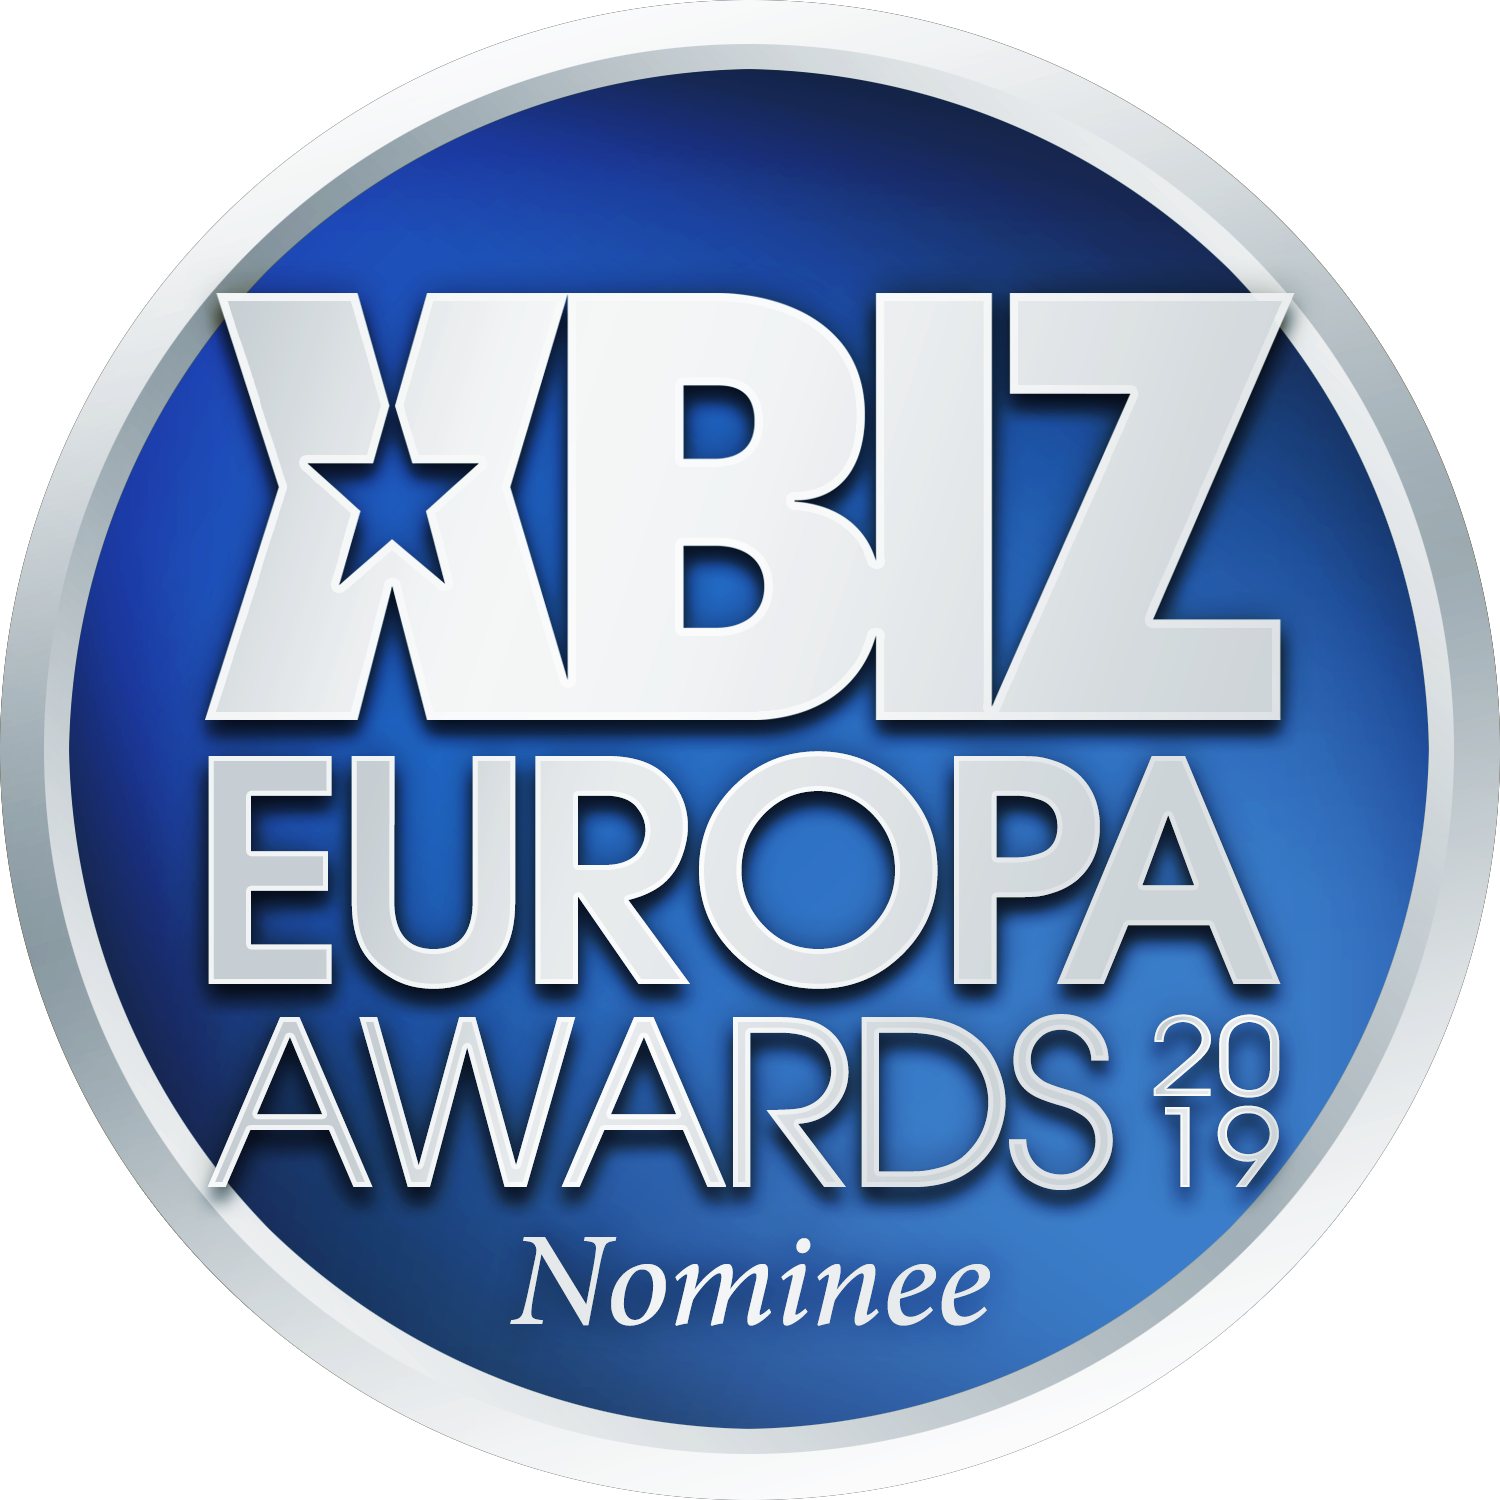 We've been nominated for Retailer of the Year in the 2019 XBIZ Europa Awards!